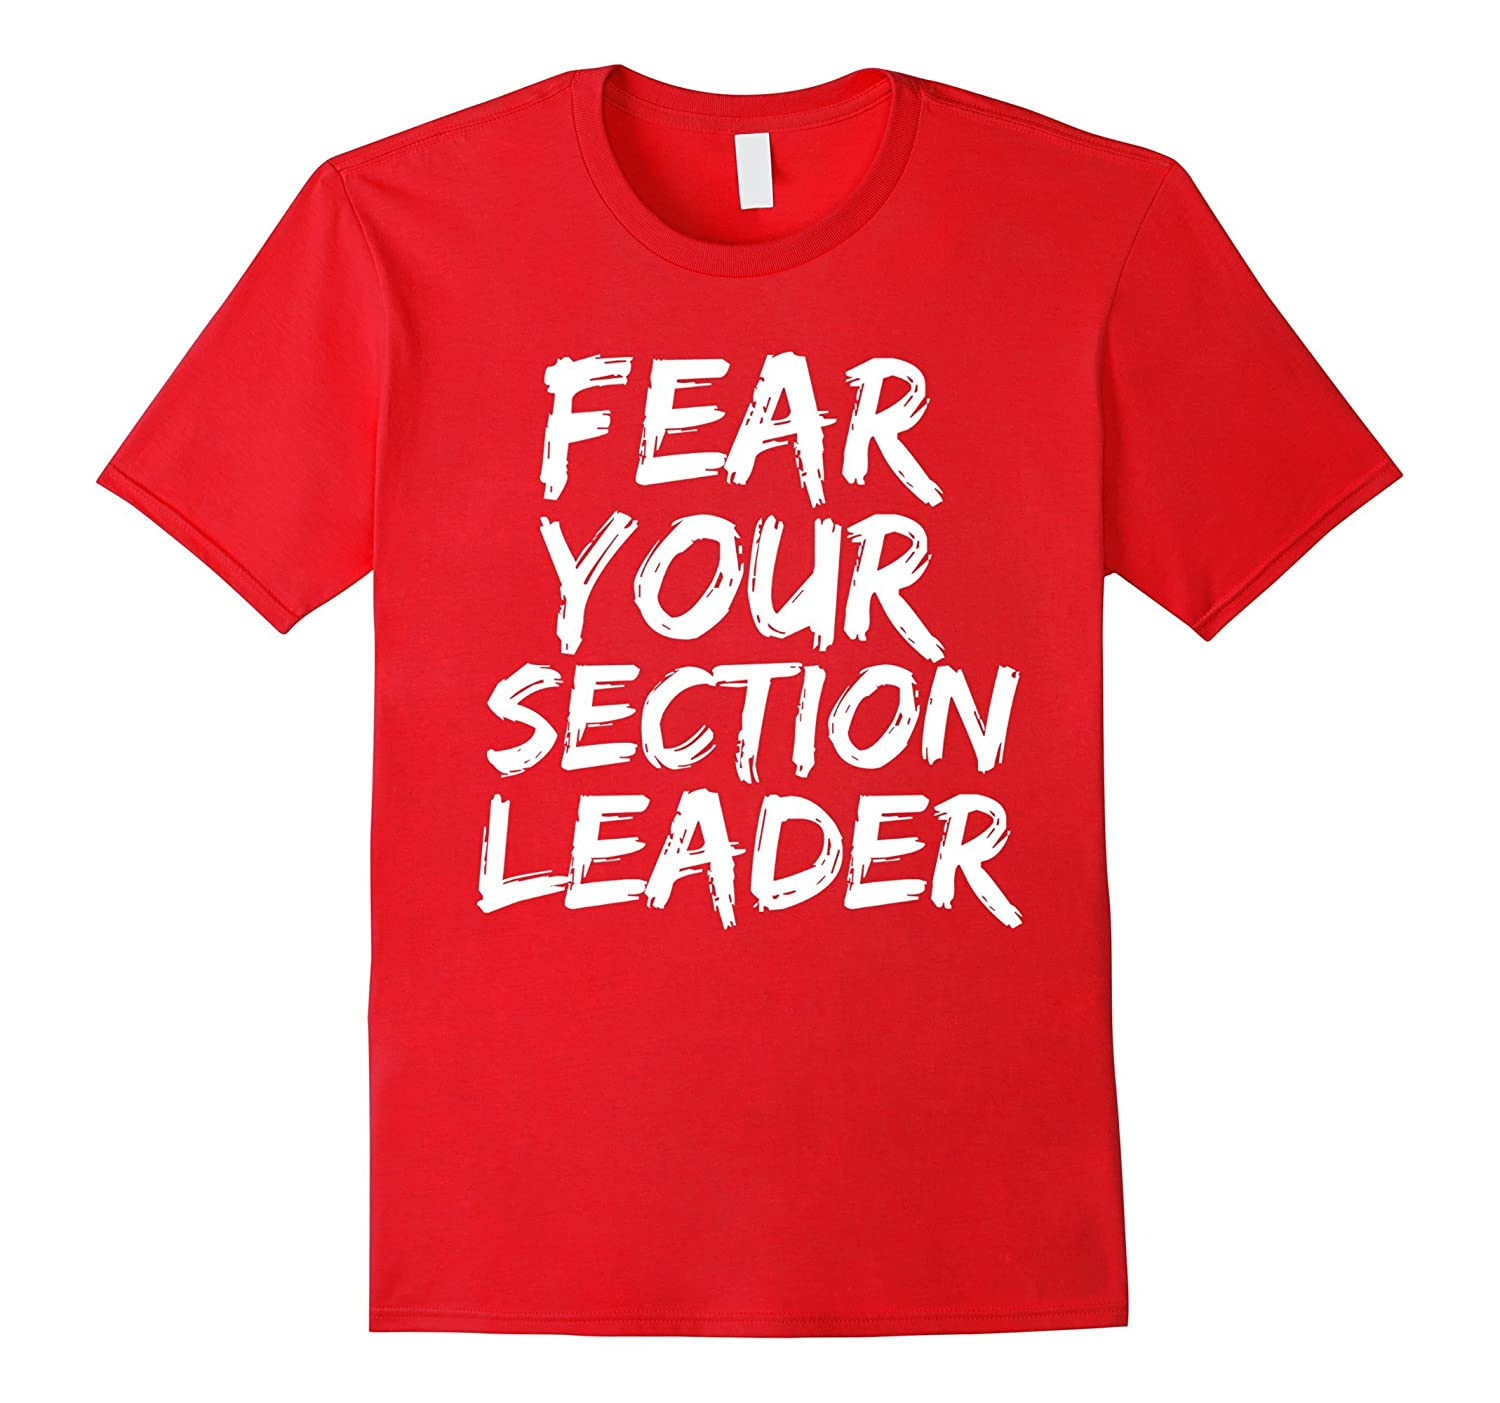 Fear Your Section Leader T Shirt Marching Band March Music Goatstee